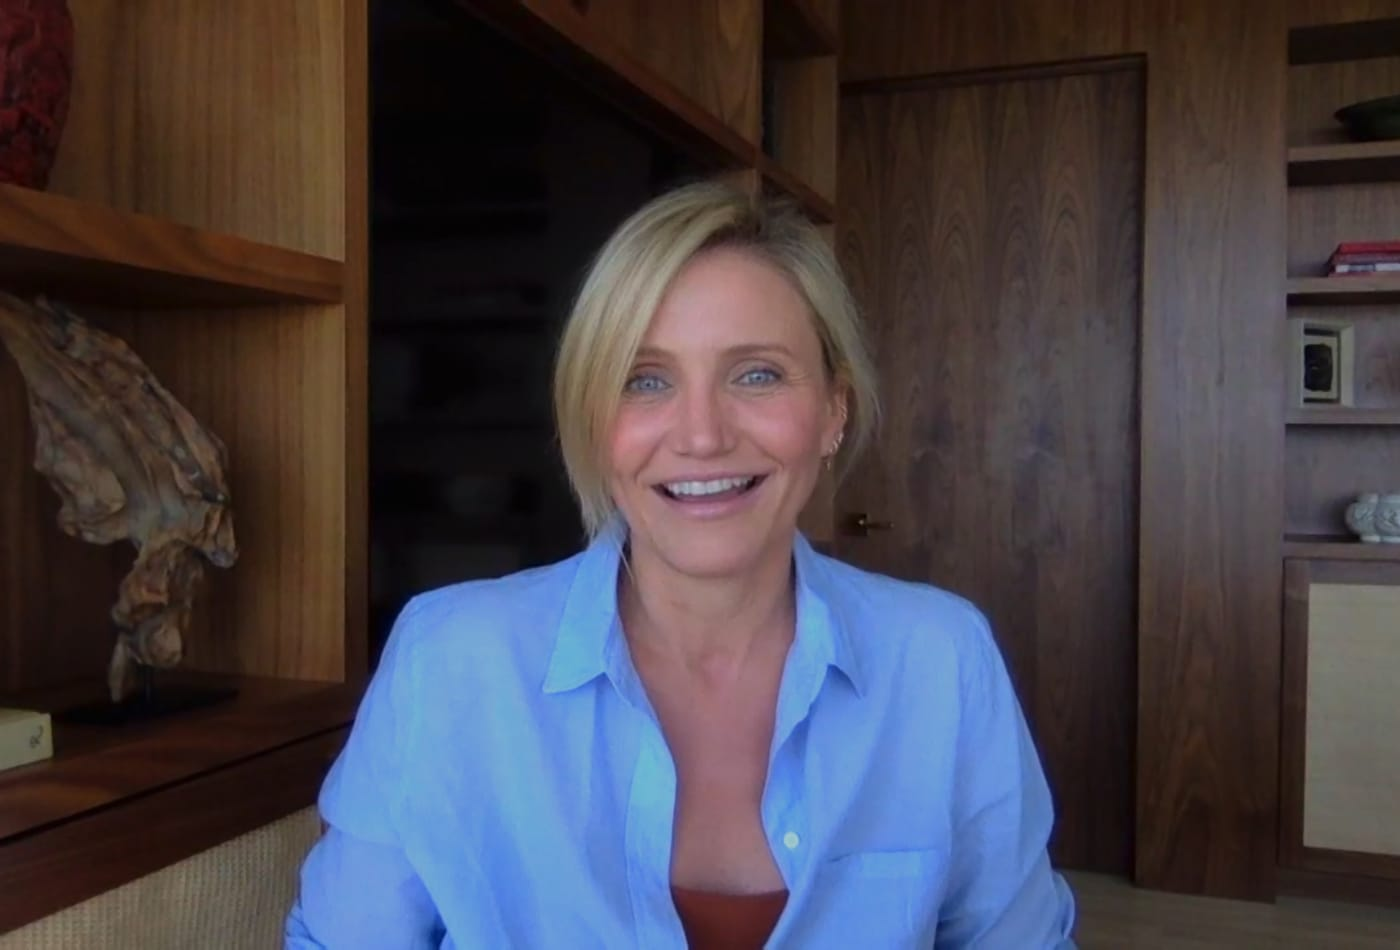 Cameron Diaz on reinventing herself: 'Intention is everything'